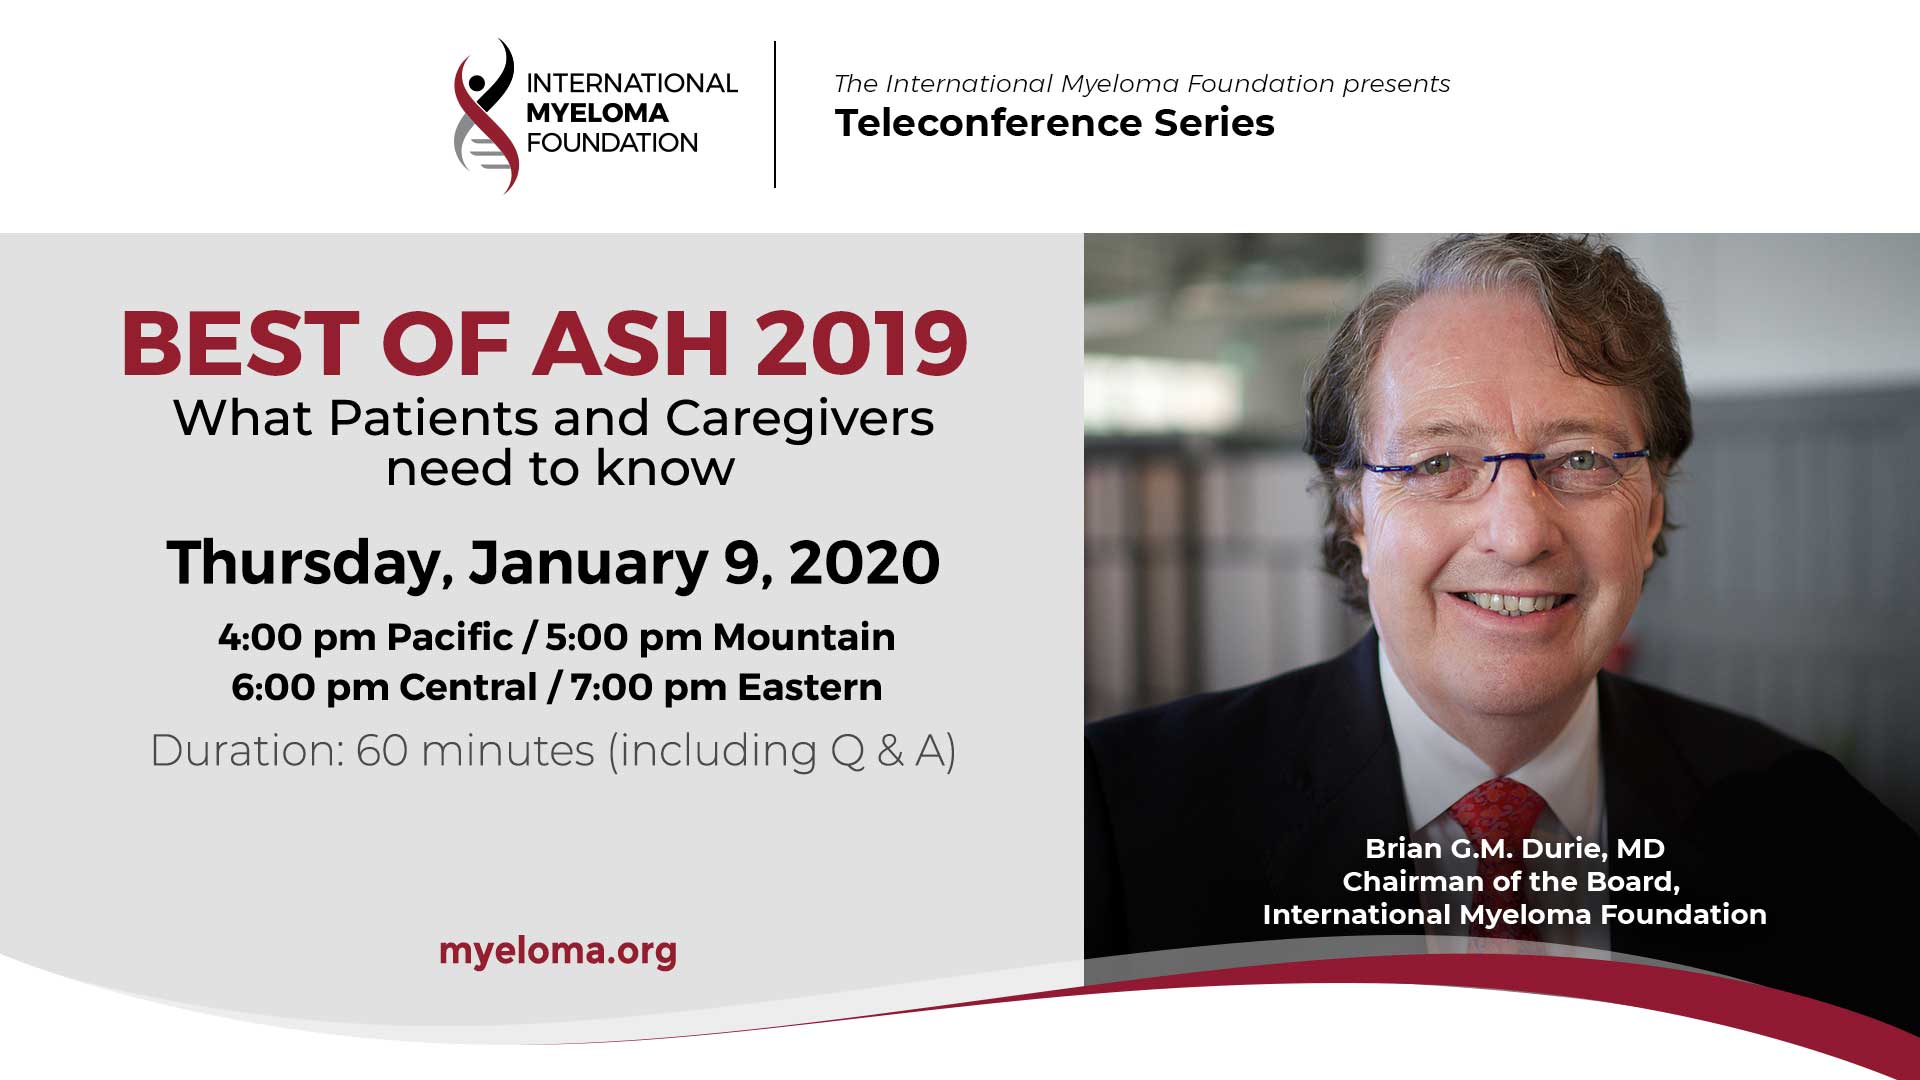 Best of ASH 2019 Teleconference